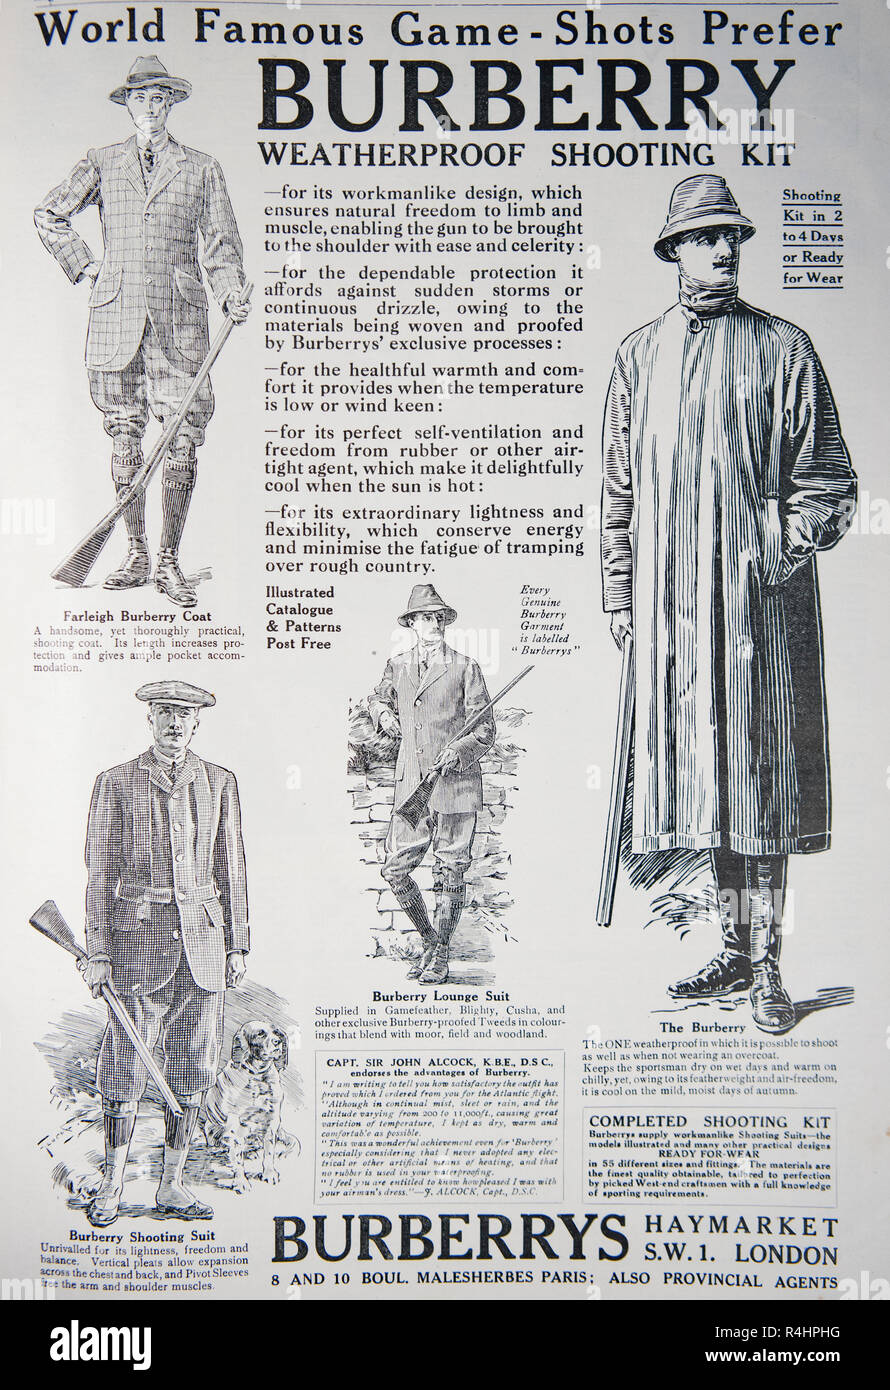 An old advert for Burberry shooting clothing. From an old British magazine from the 1914-1919 period. - Stock Image